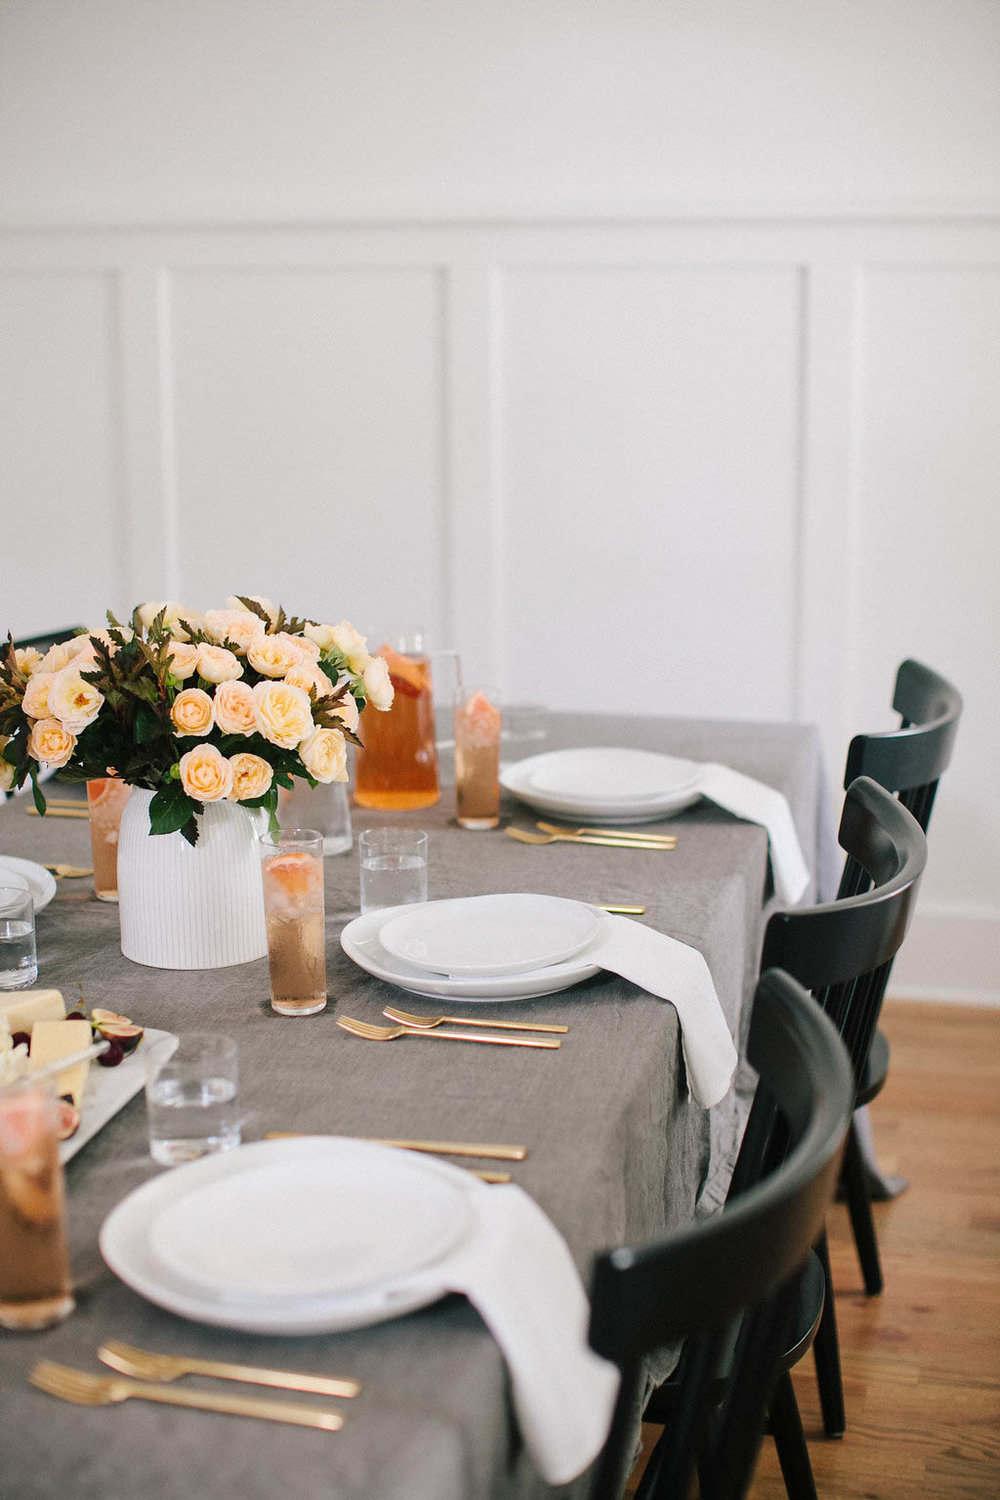 12th-Table-WEDDING-RENTALS-NASHVILLE-Design-Tips-Hosting-ENTERTAINING-HowToHost-HowIHost-WendellHome-Photograph-43.jpg